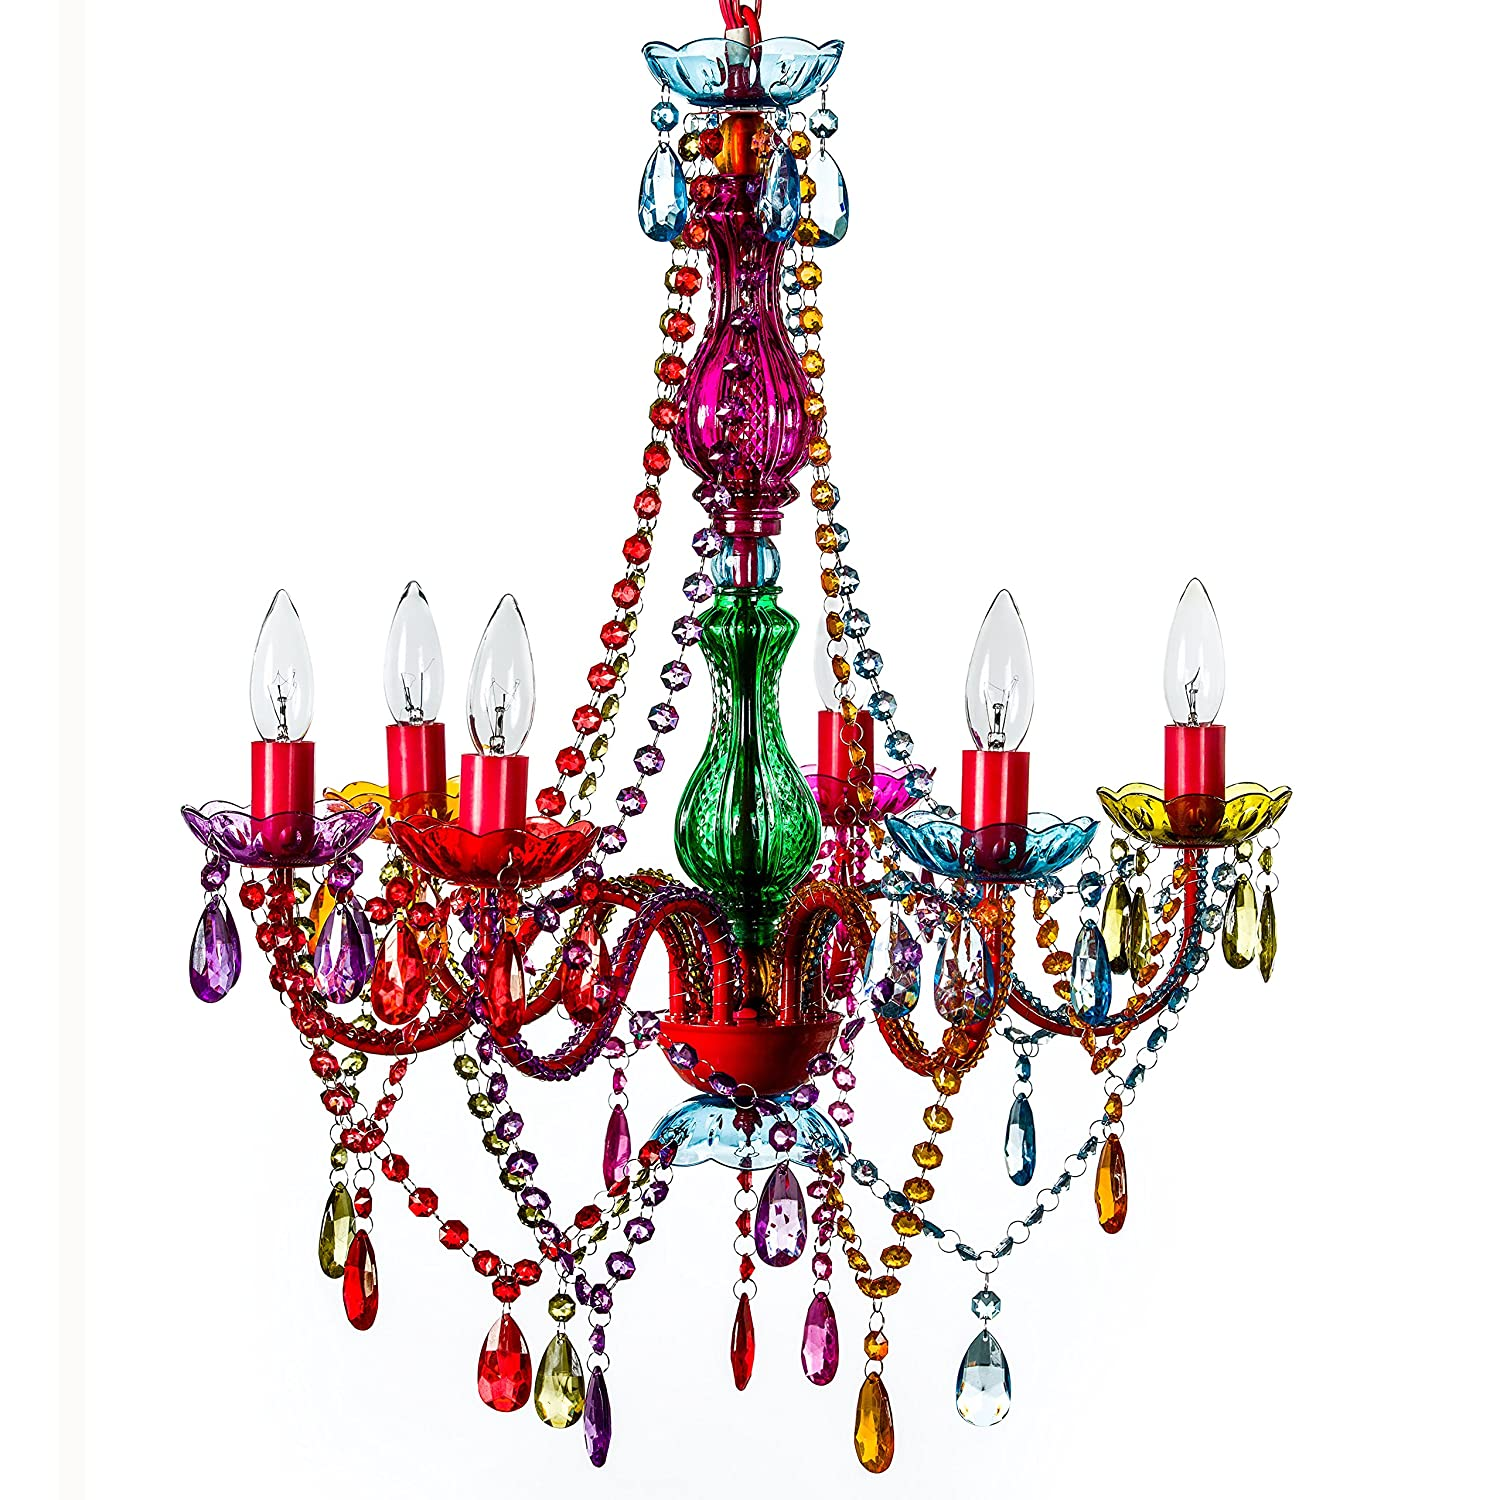 The Original Gypsy Color 6 Light Large Chandelier H26 W22 Red Metal Frame With Multi Acrylic Crystals Com